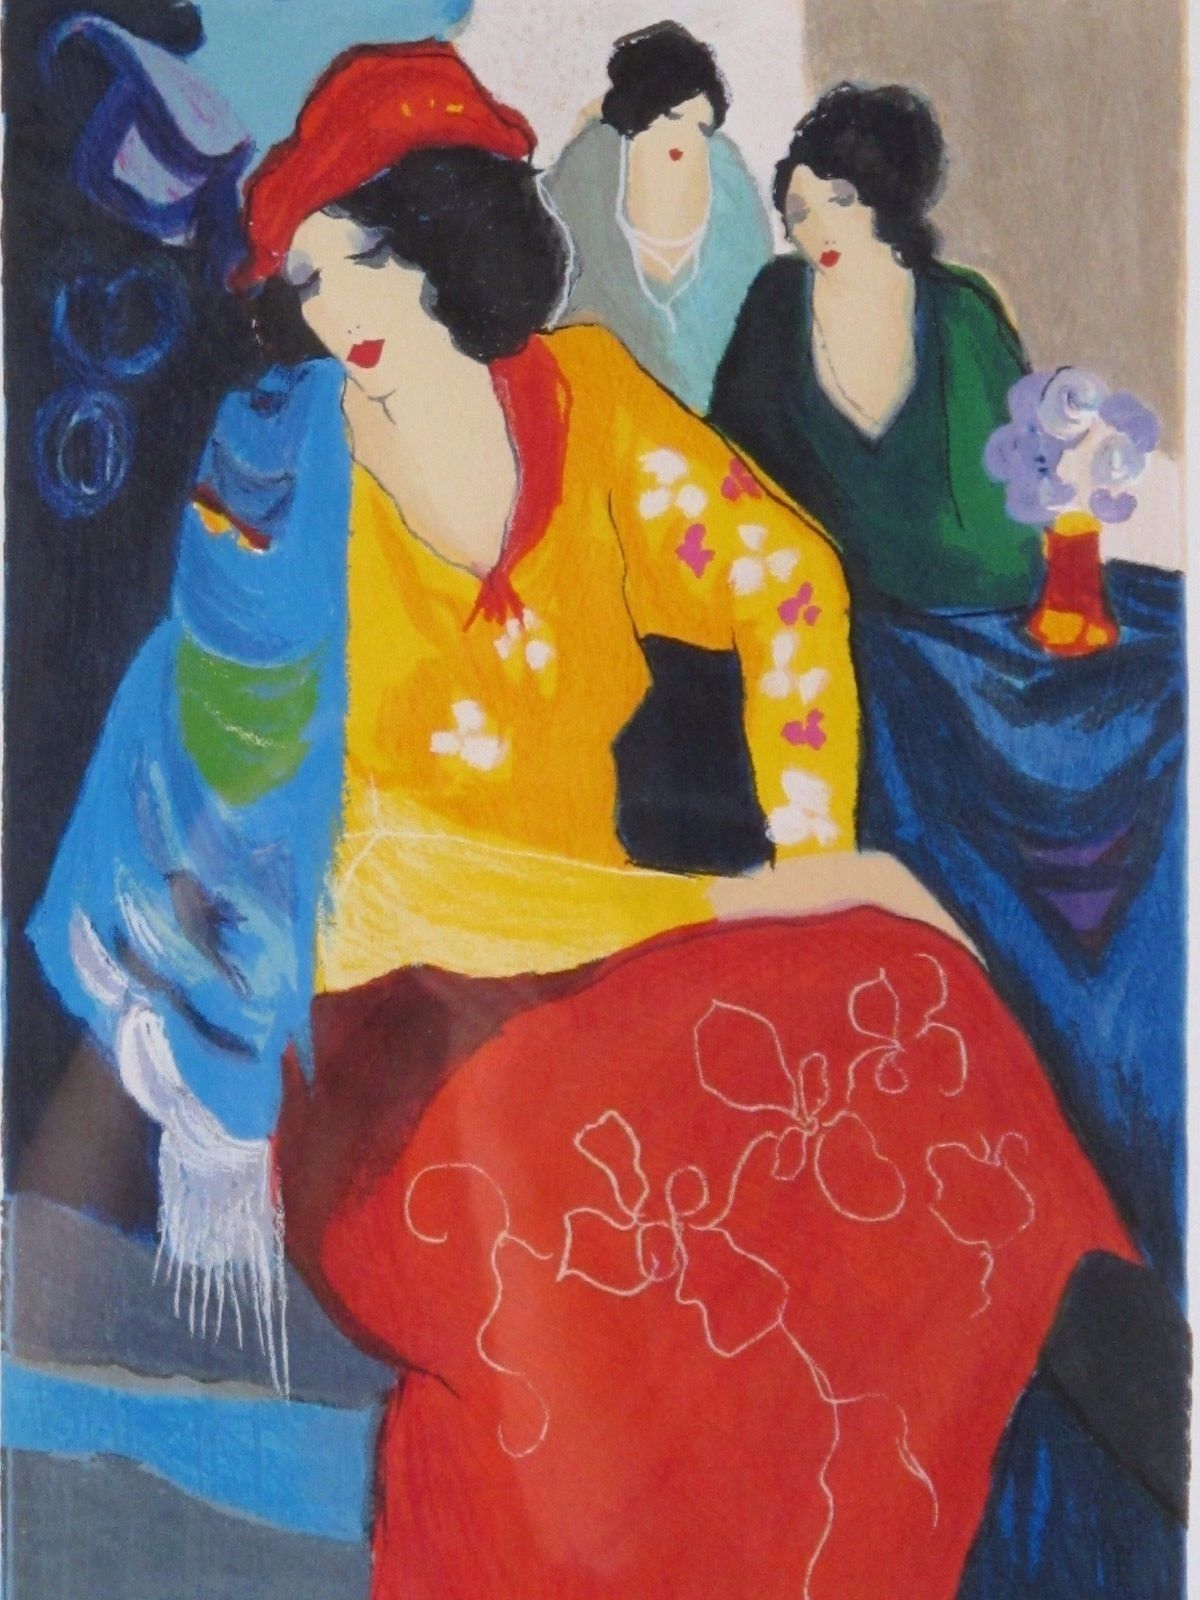 34.2 TARKAY SERIGRAPH FIVE GRACES SUITE IV 16x12 in